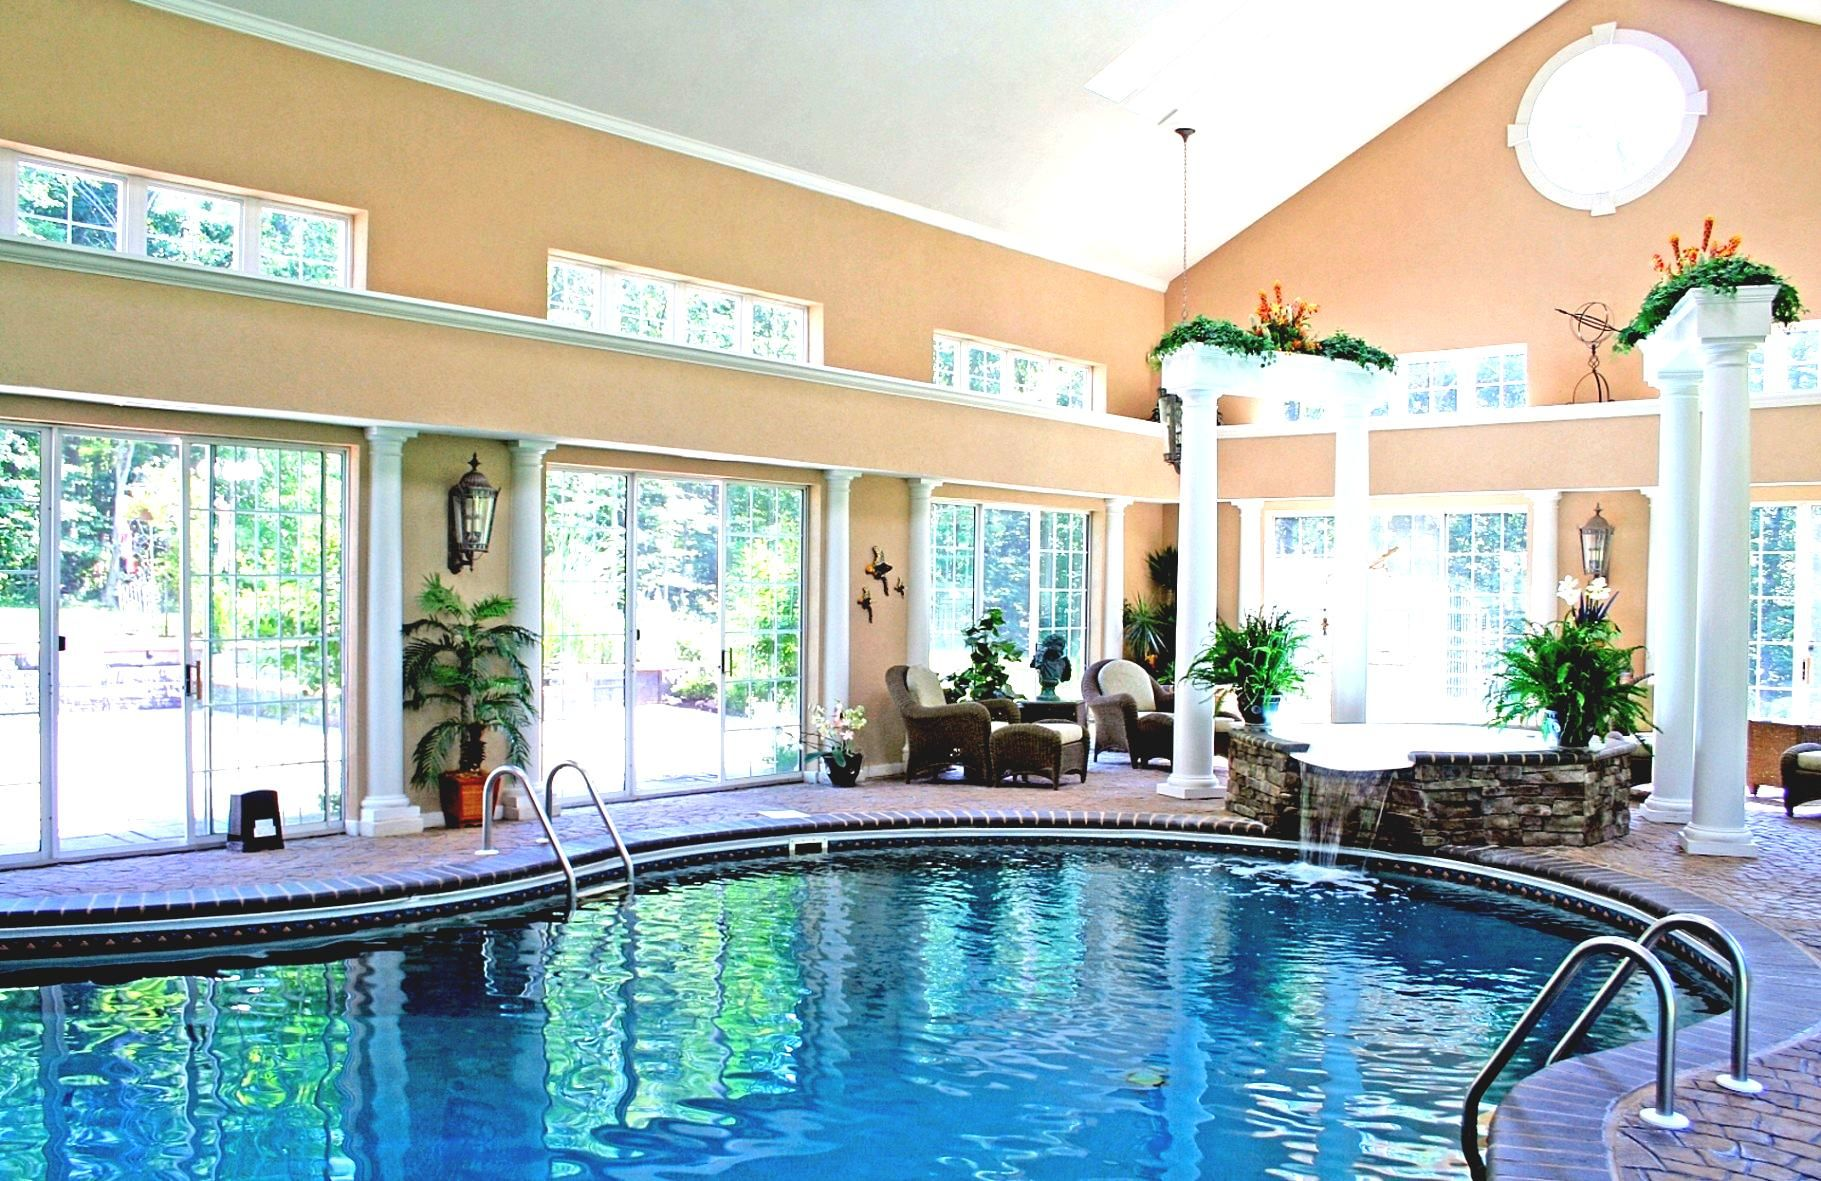 Home indoor pool and hot tub  modern house design with swimming pool wonderful indoor pathway amp ...